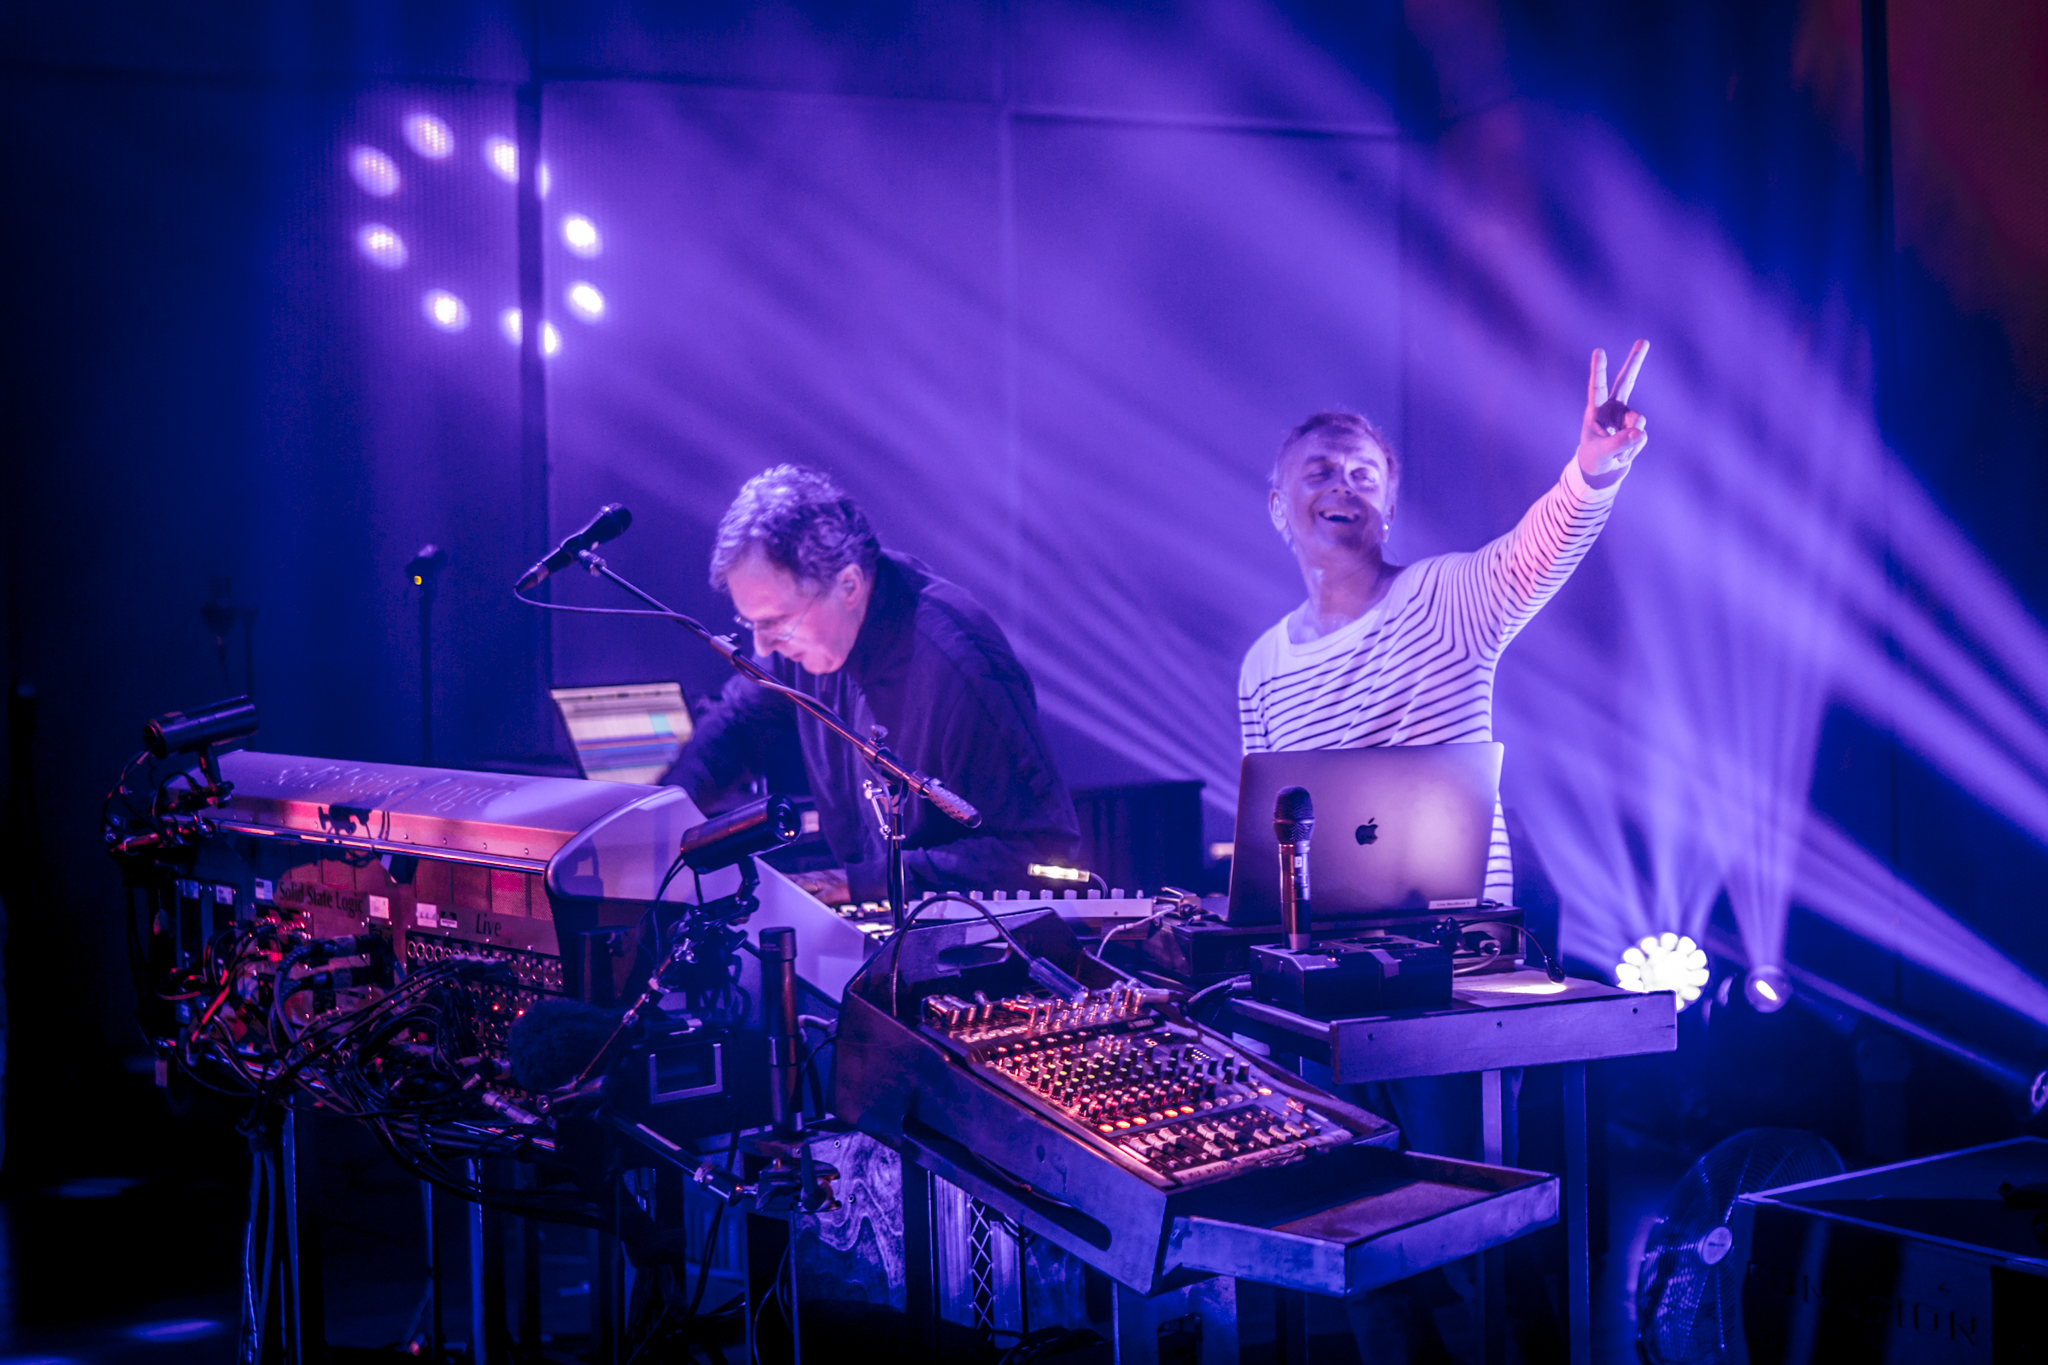 Underworld: 13 amazing photos from their live show at the IMS Legends Dinner